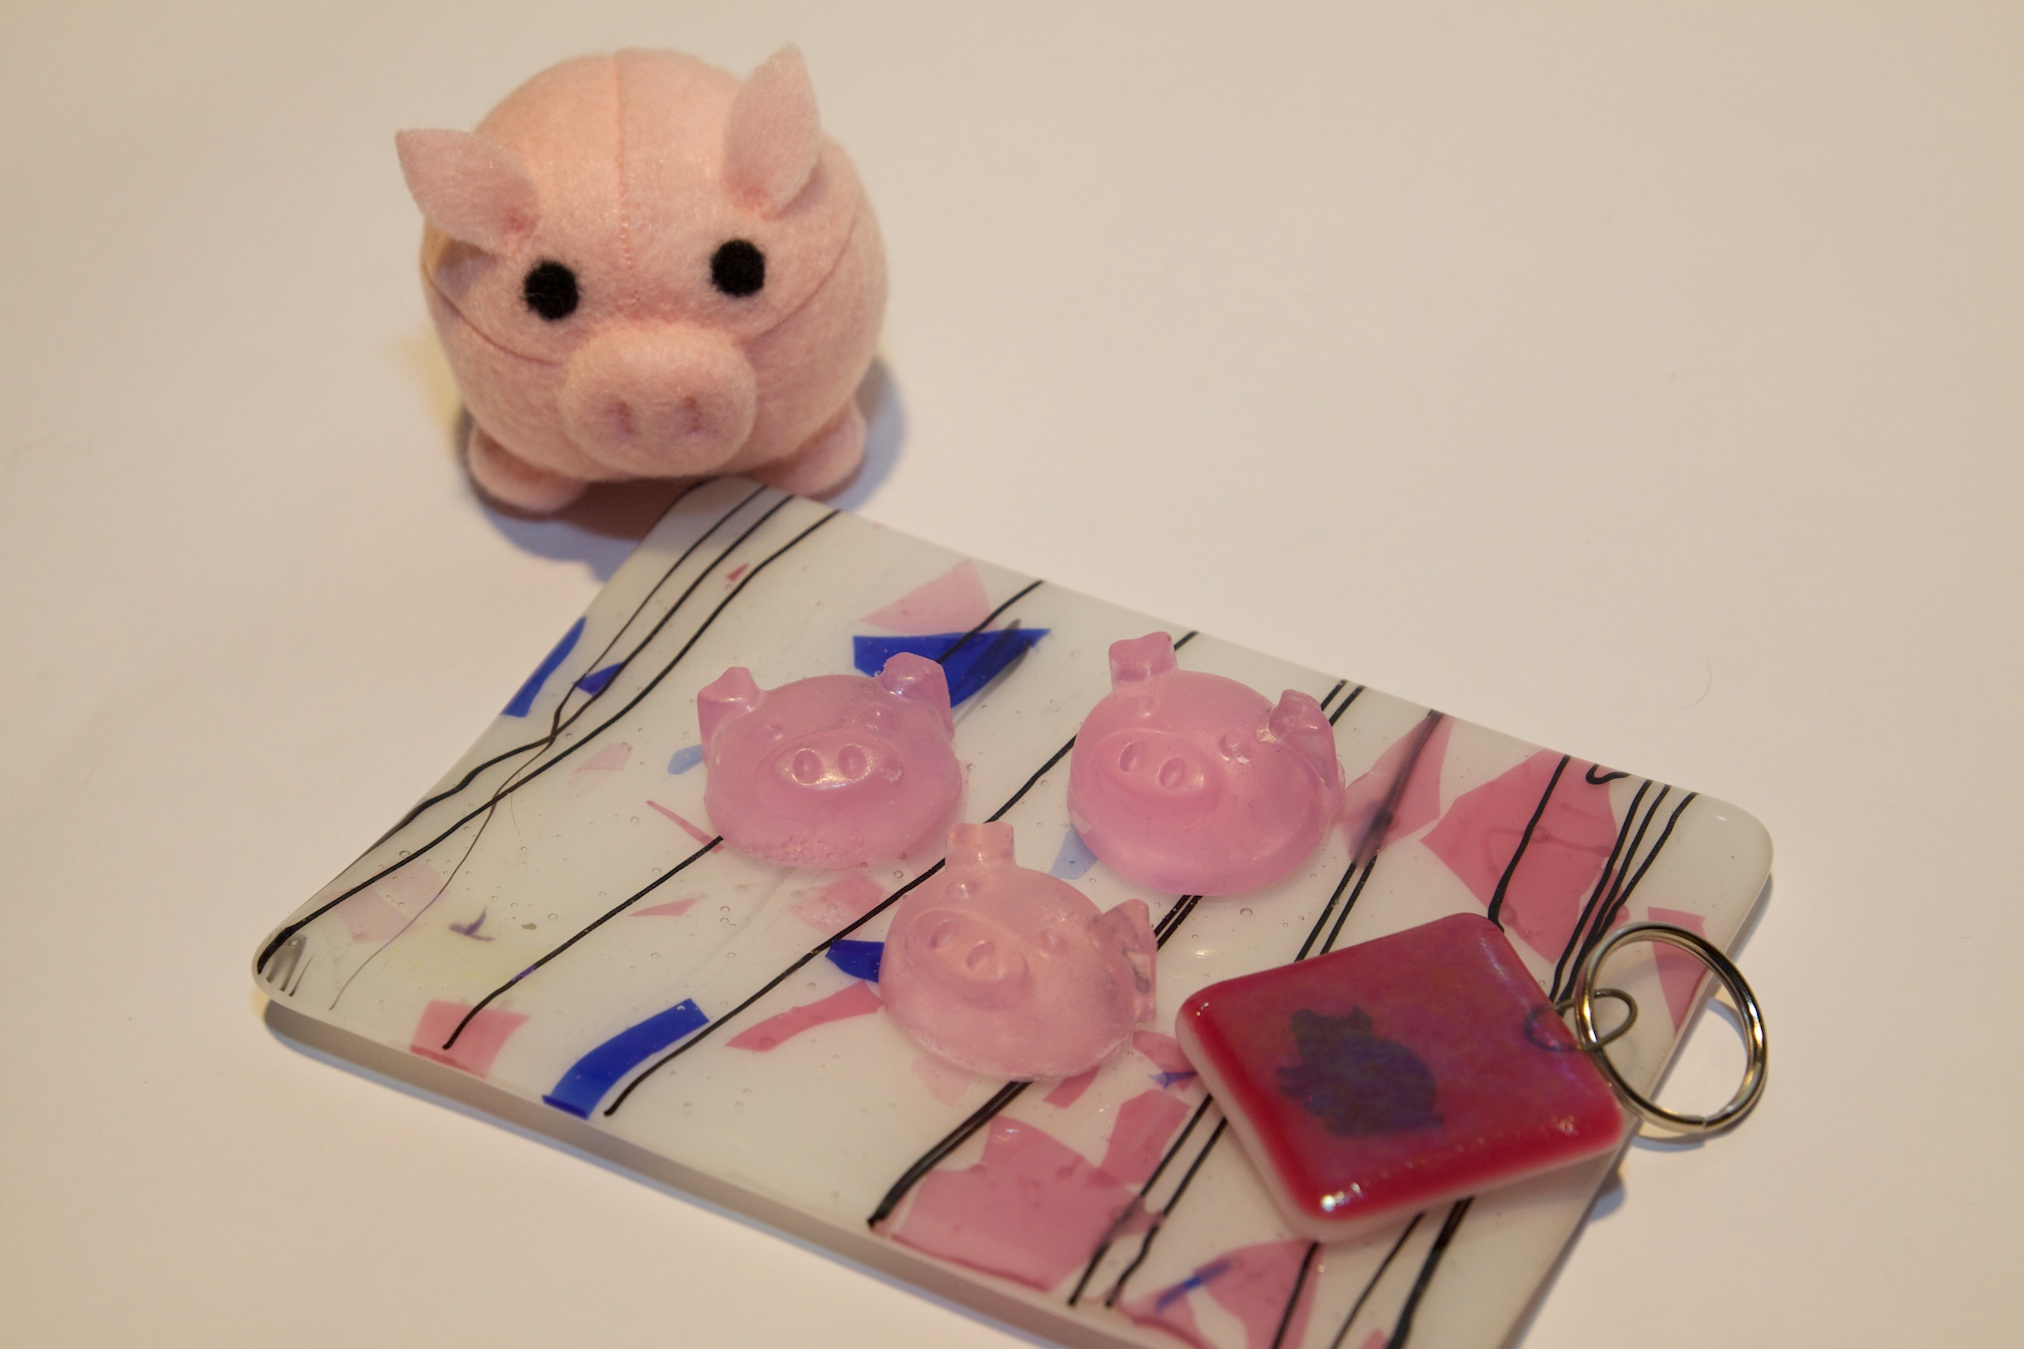 The Pig Pack! Includes pig-themed glass soap dish from Maggie Bevis and glass pig keychain from Helen Cowart.